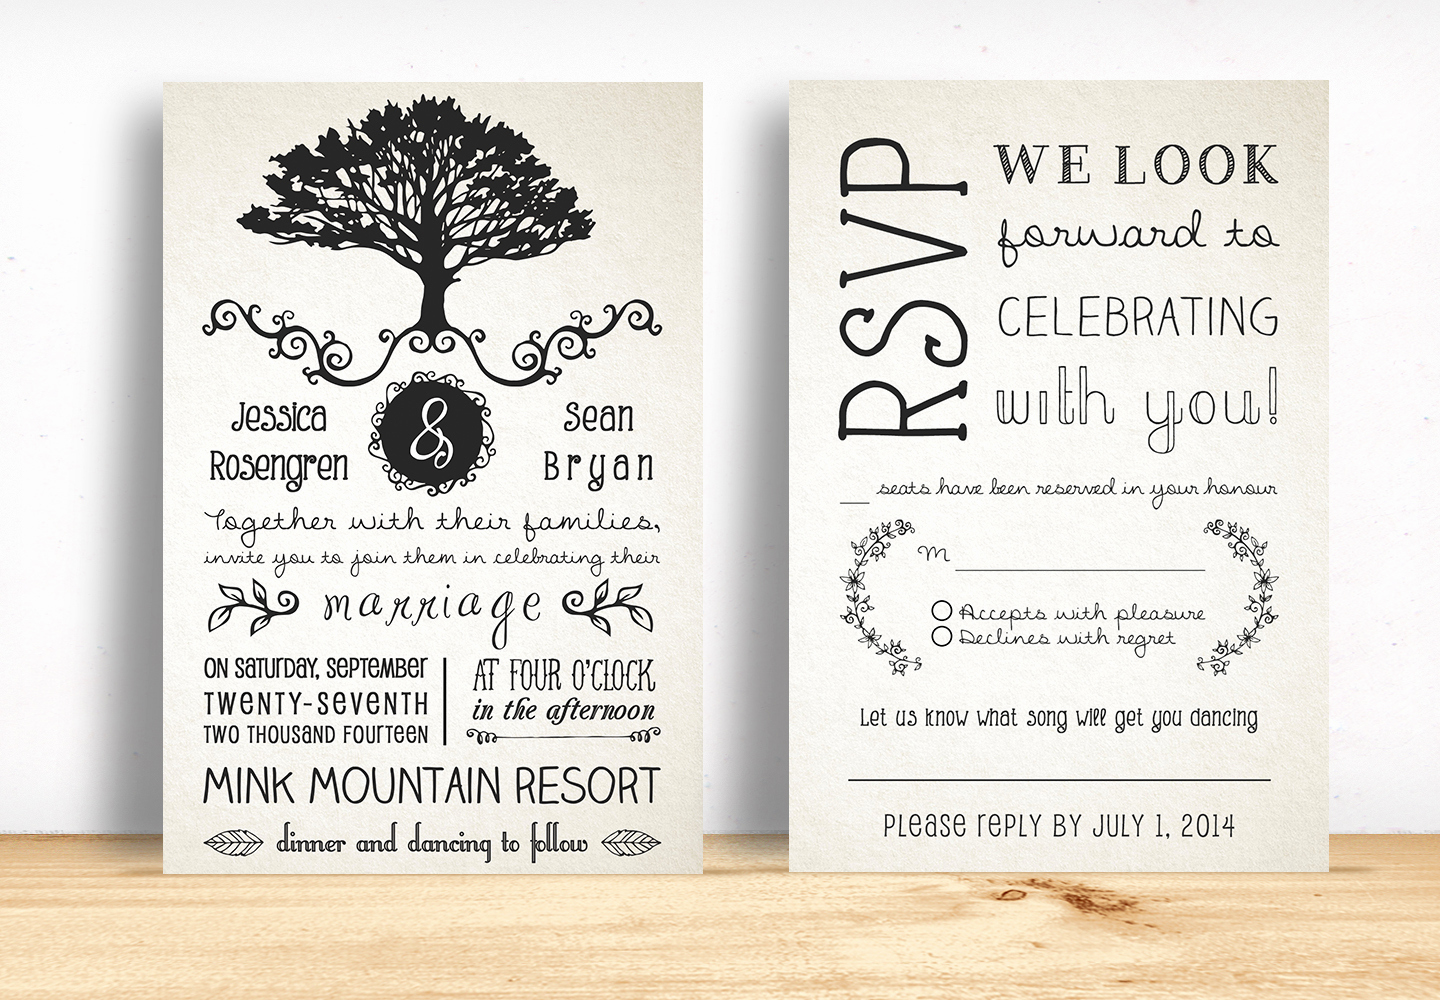 Rustic Wedding Invitation Templates Awesome Rustic Wedding Invitation Pack Invitation Templates On